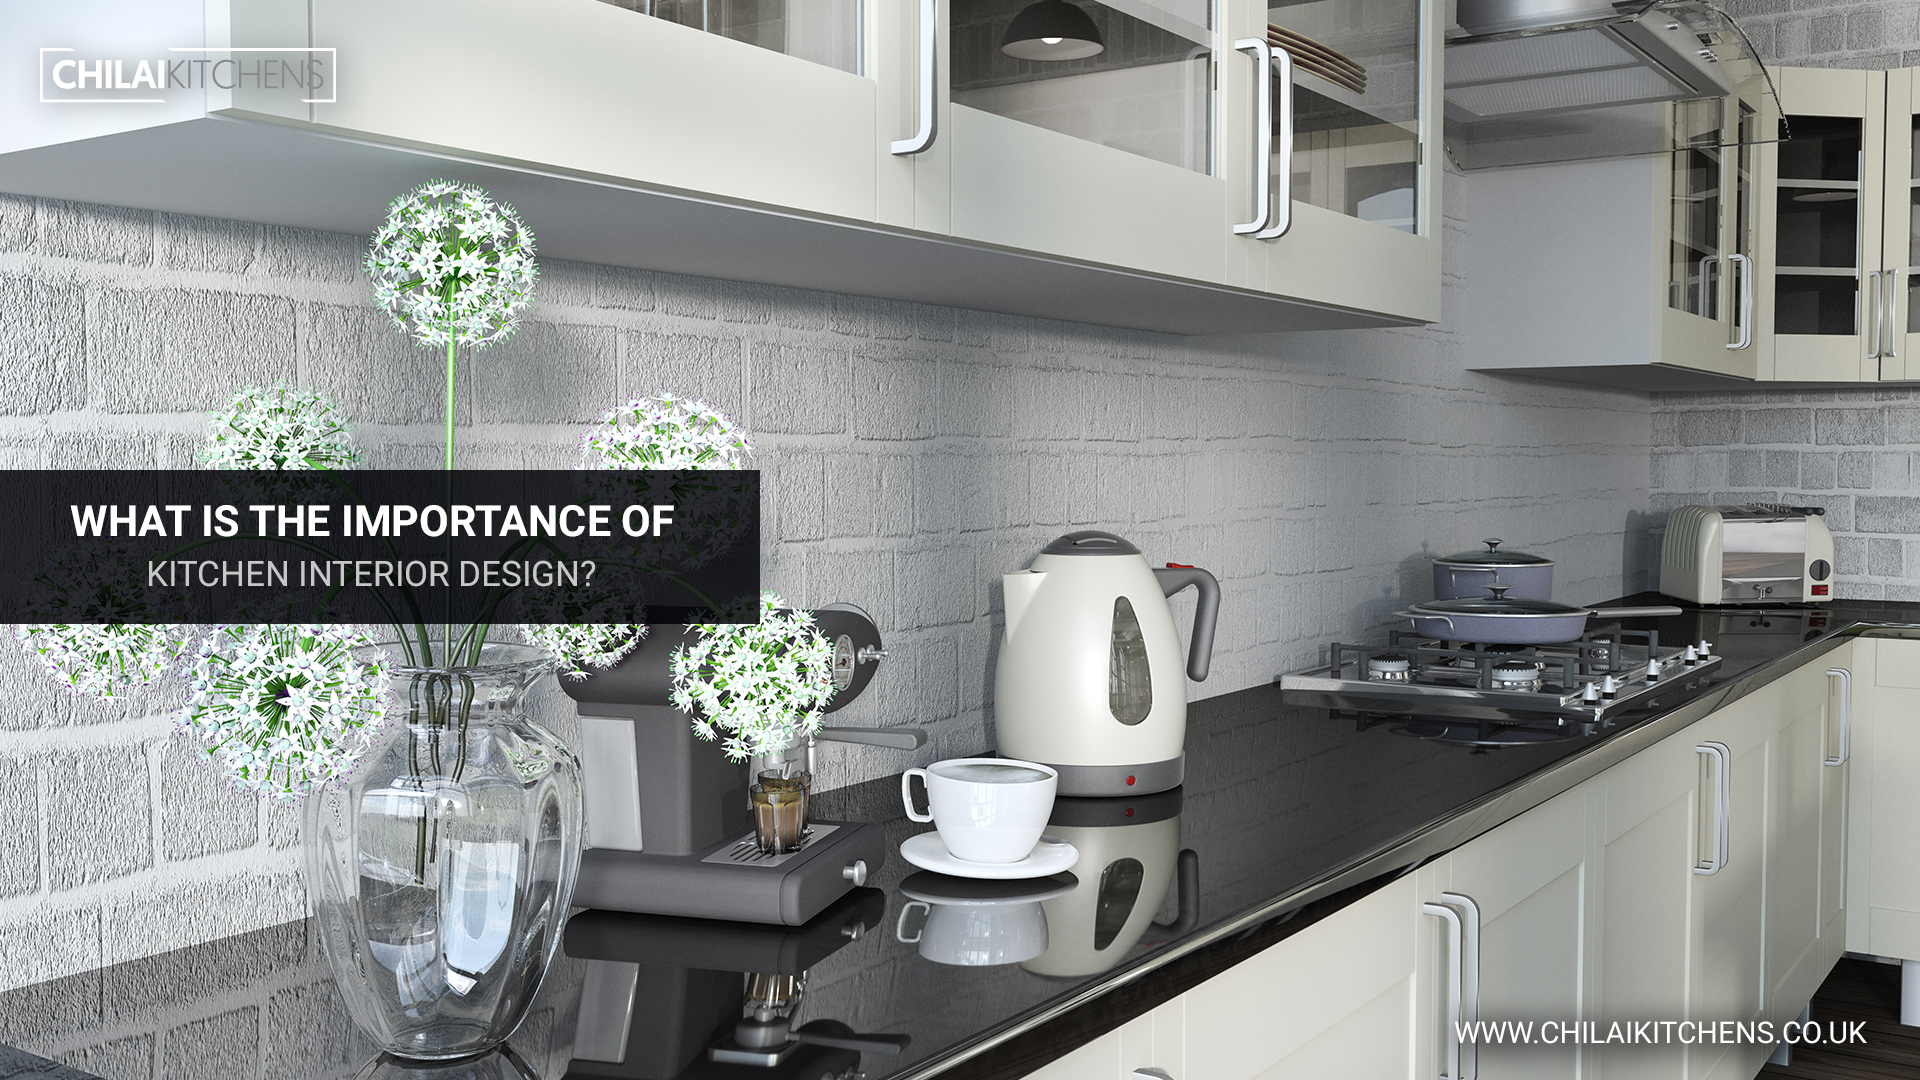 What Is The Importance Of Kitchen Interior Design?